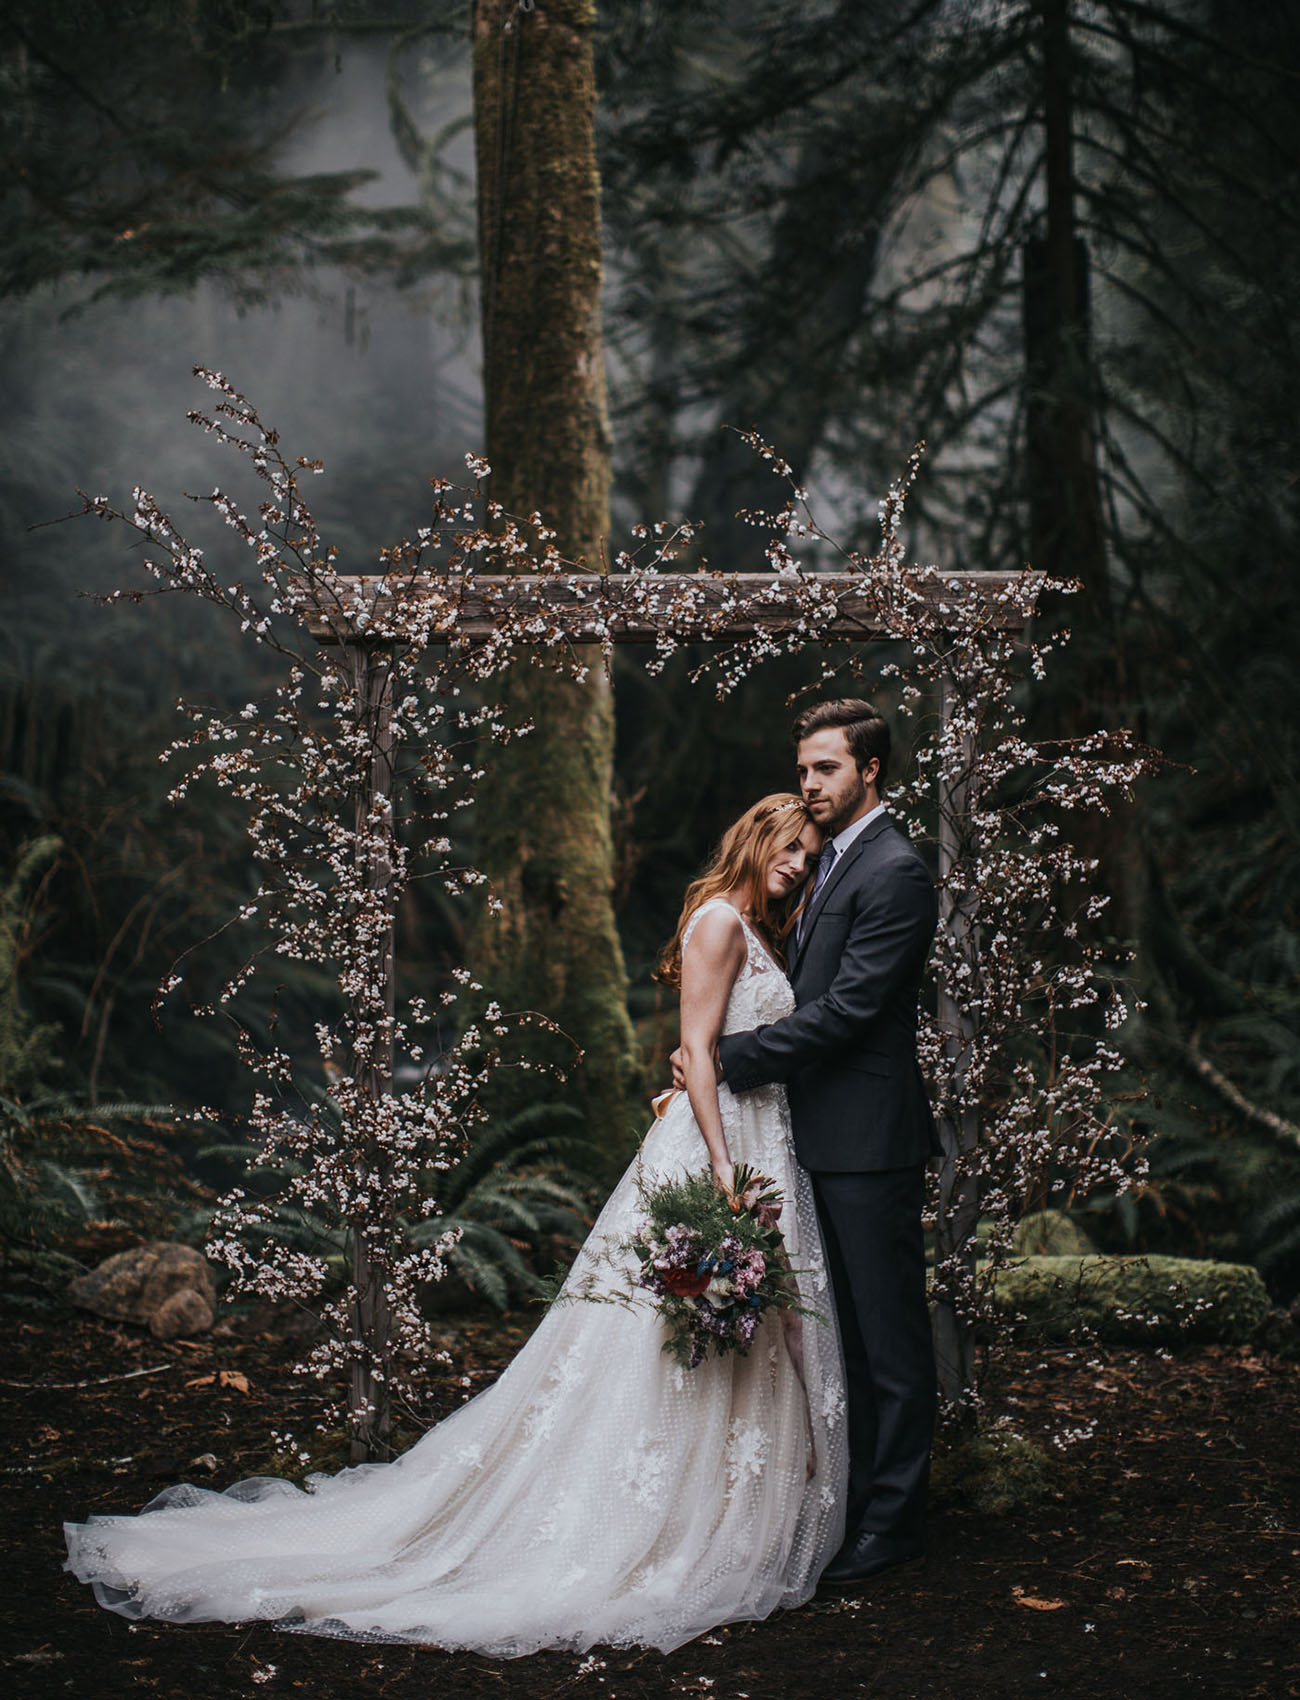 This charming woodland wedding shoot is inspired by Belle, it's full of beautiful details and fresh spring vibes